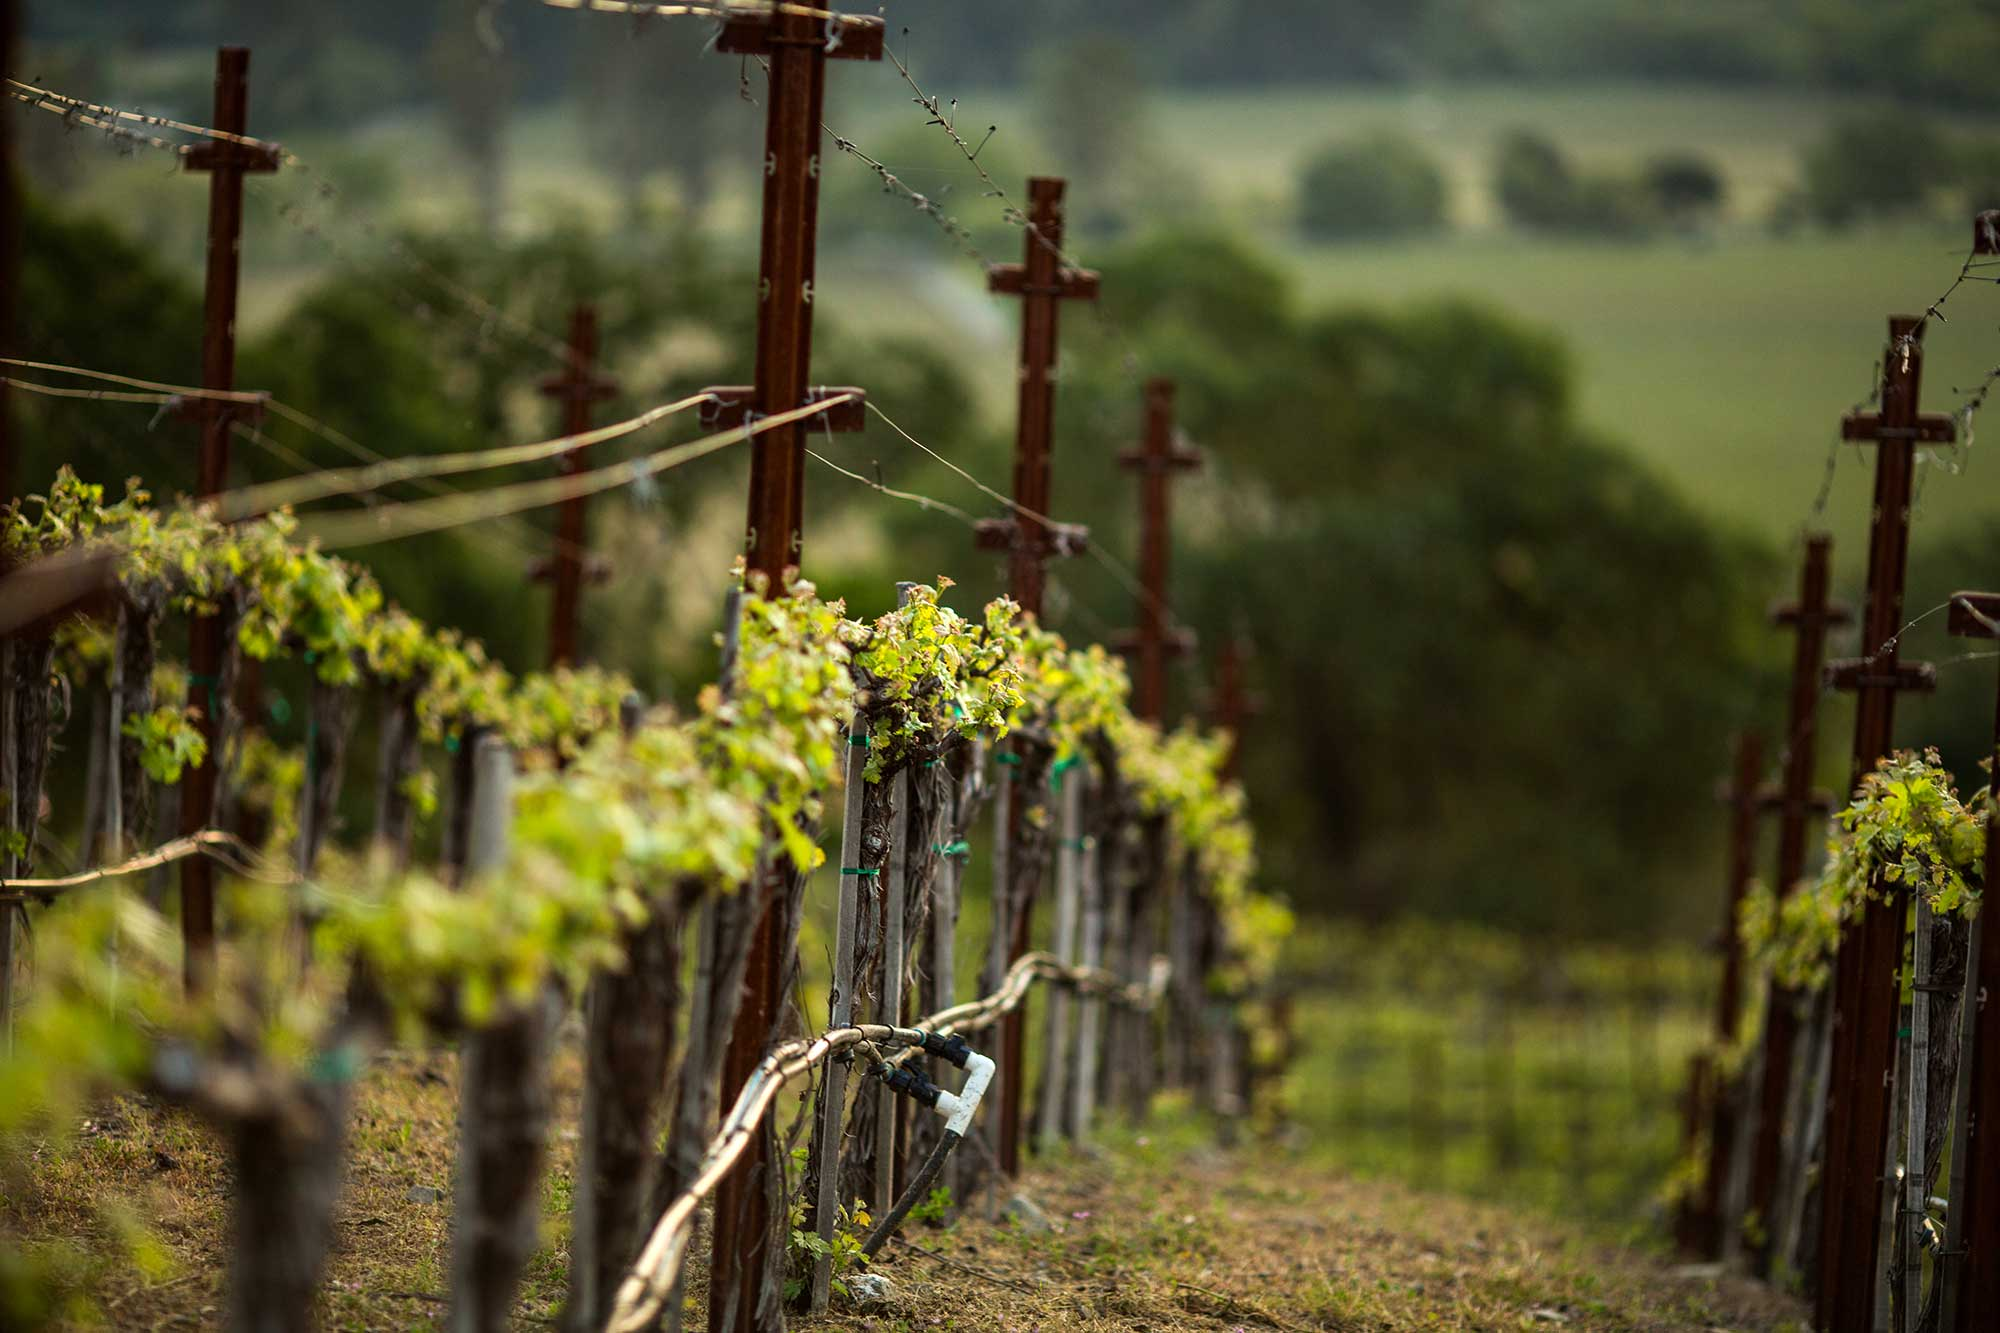 A vineyard row at Keever Vineyards in Yountville, California